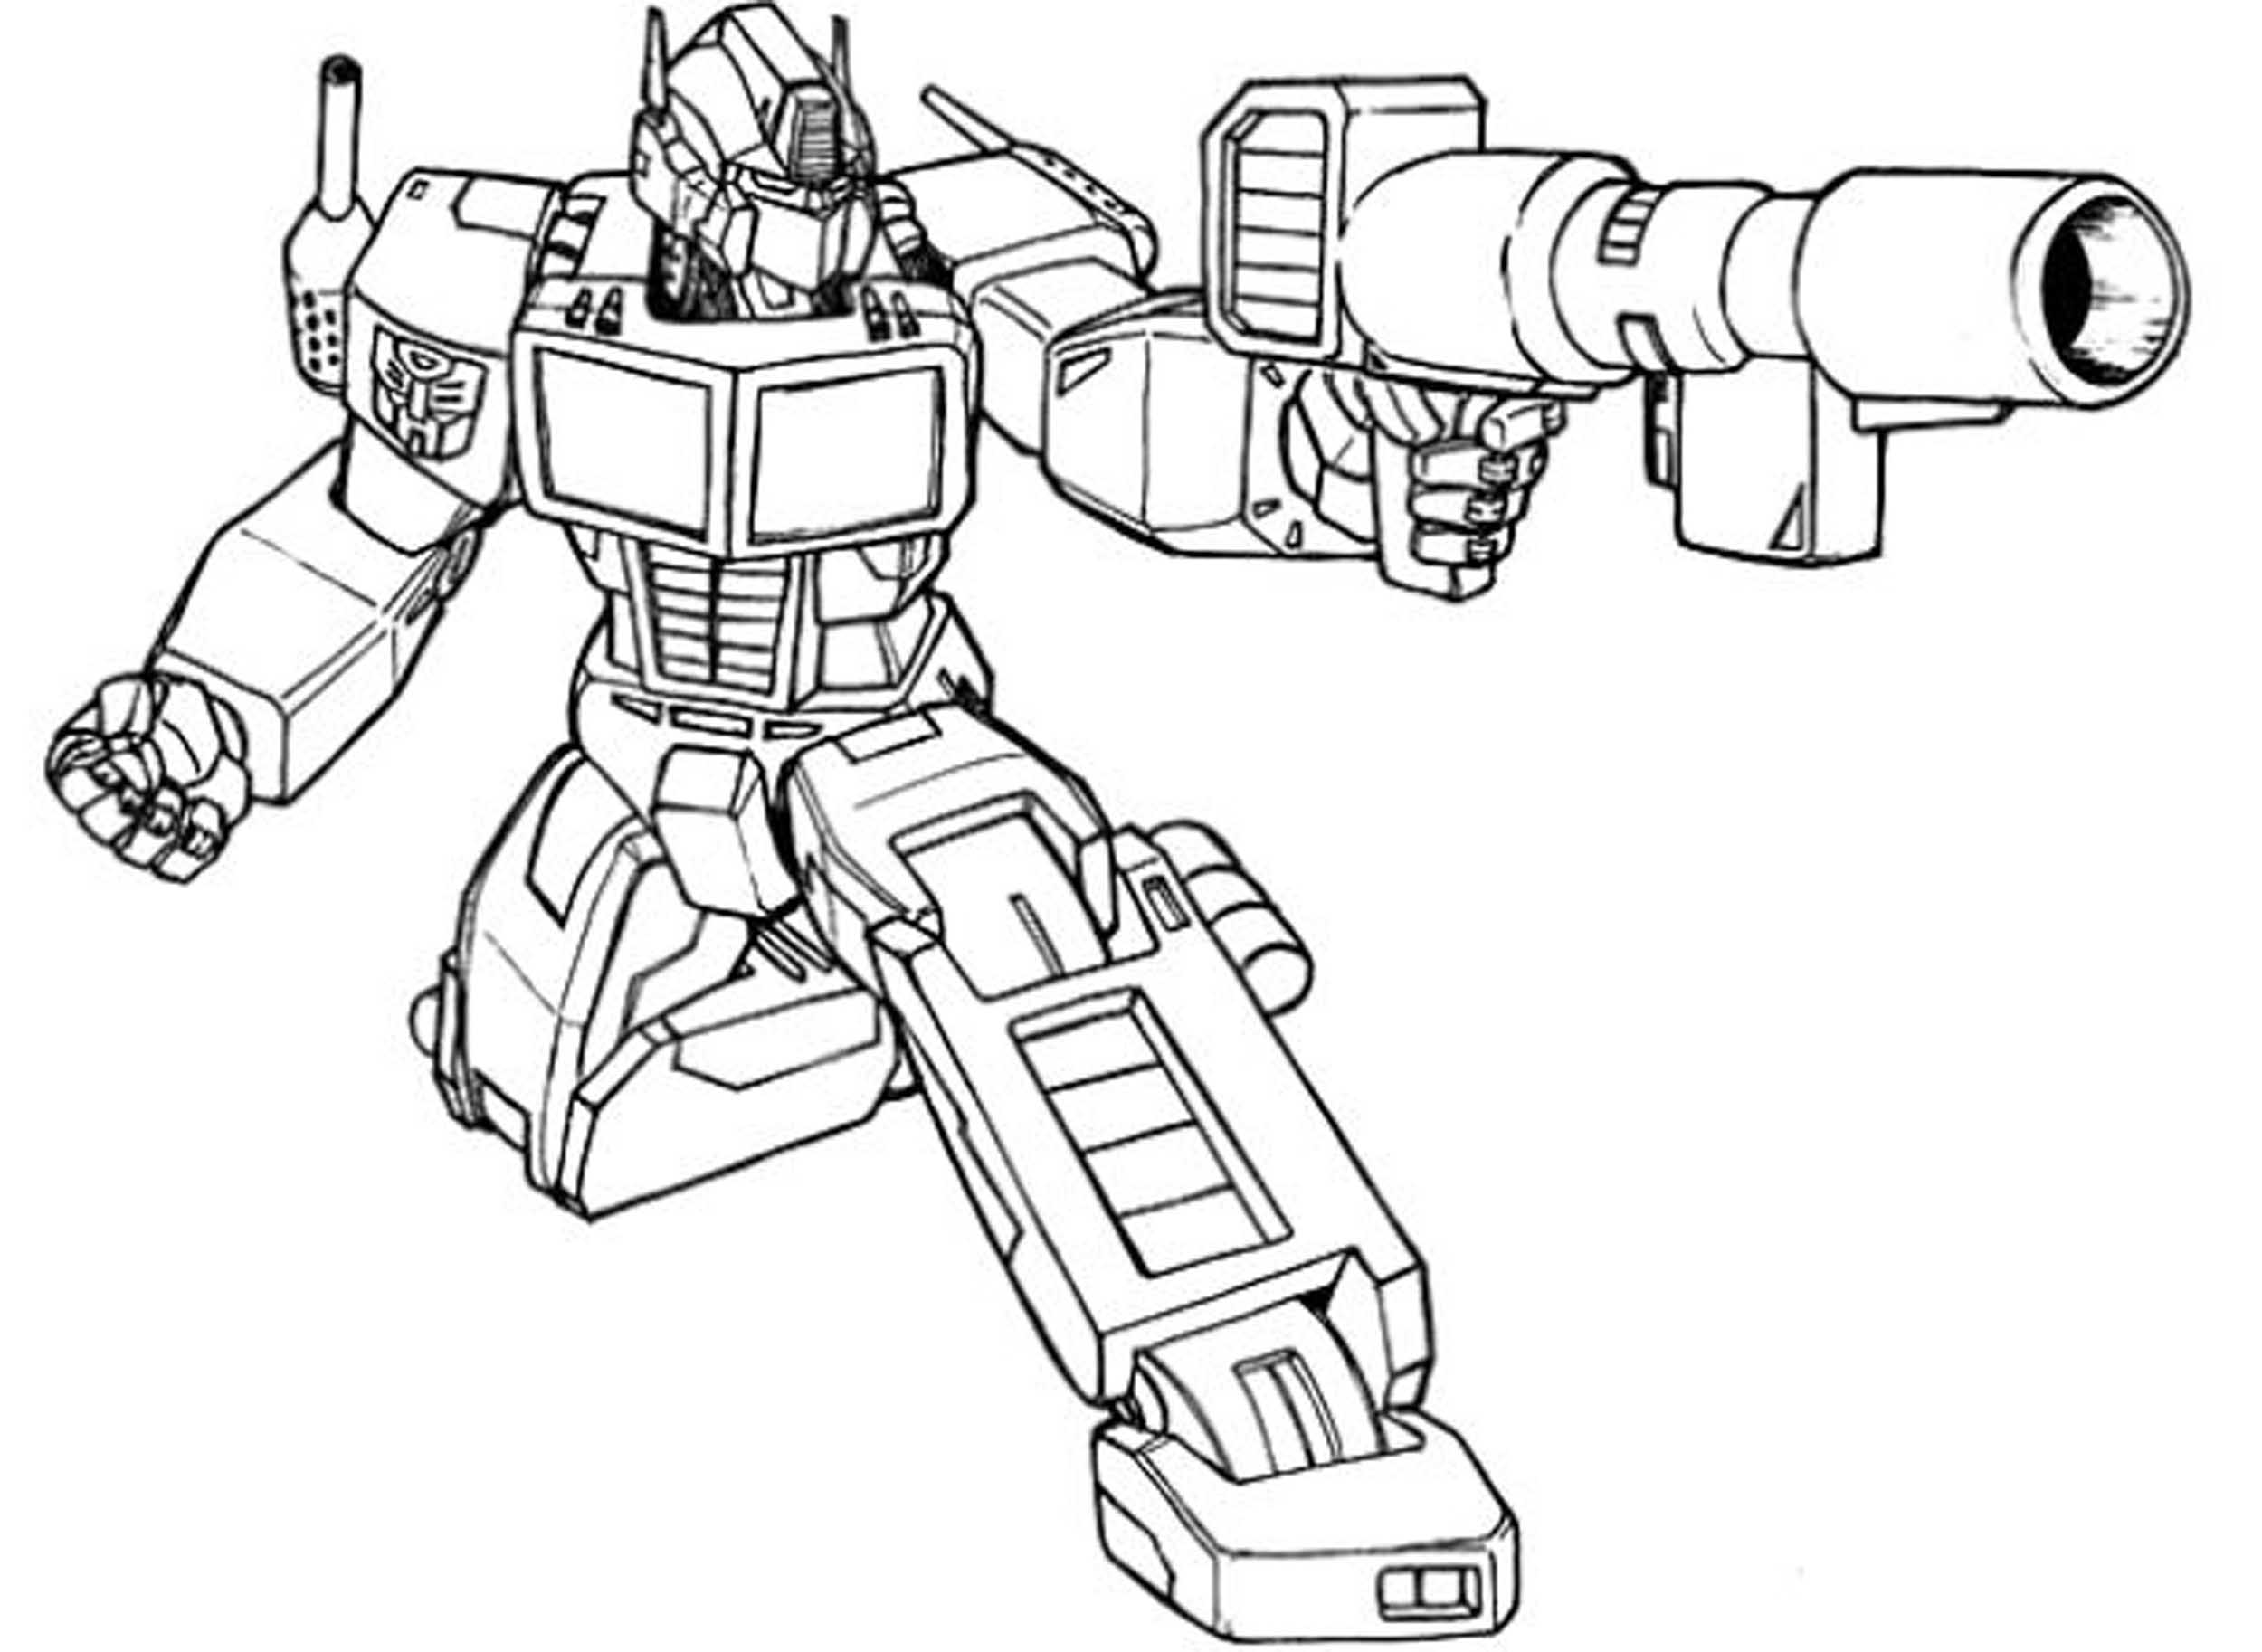 print download inviting kids to do the transformers coloring pages Transformers Soundwave Coloring Pages bumblebee transformer coloring page